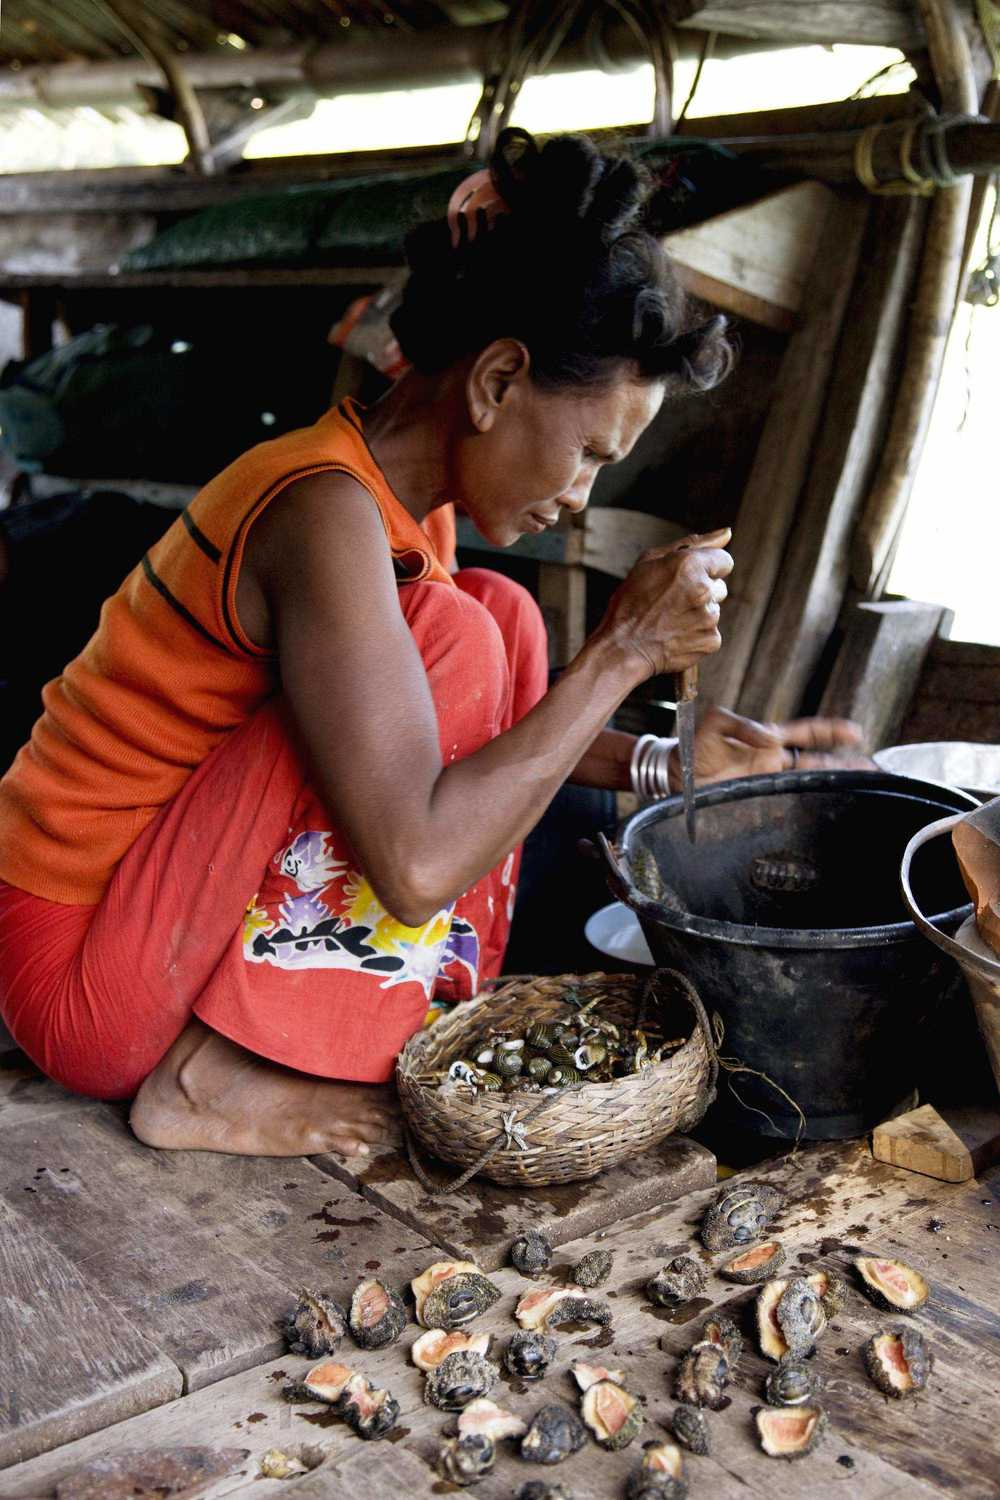 39.Sabai preparing to make lunch on the Kabang.jpeg